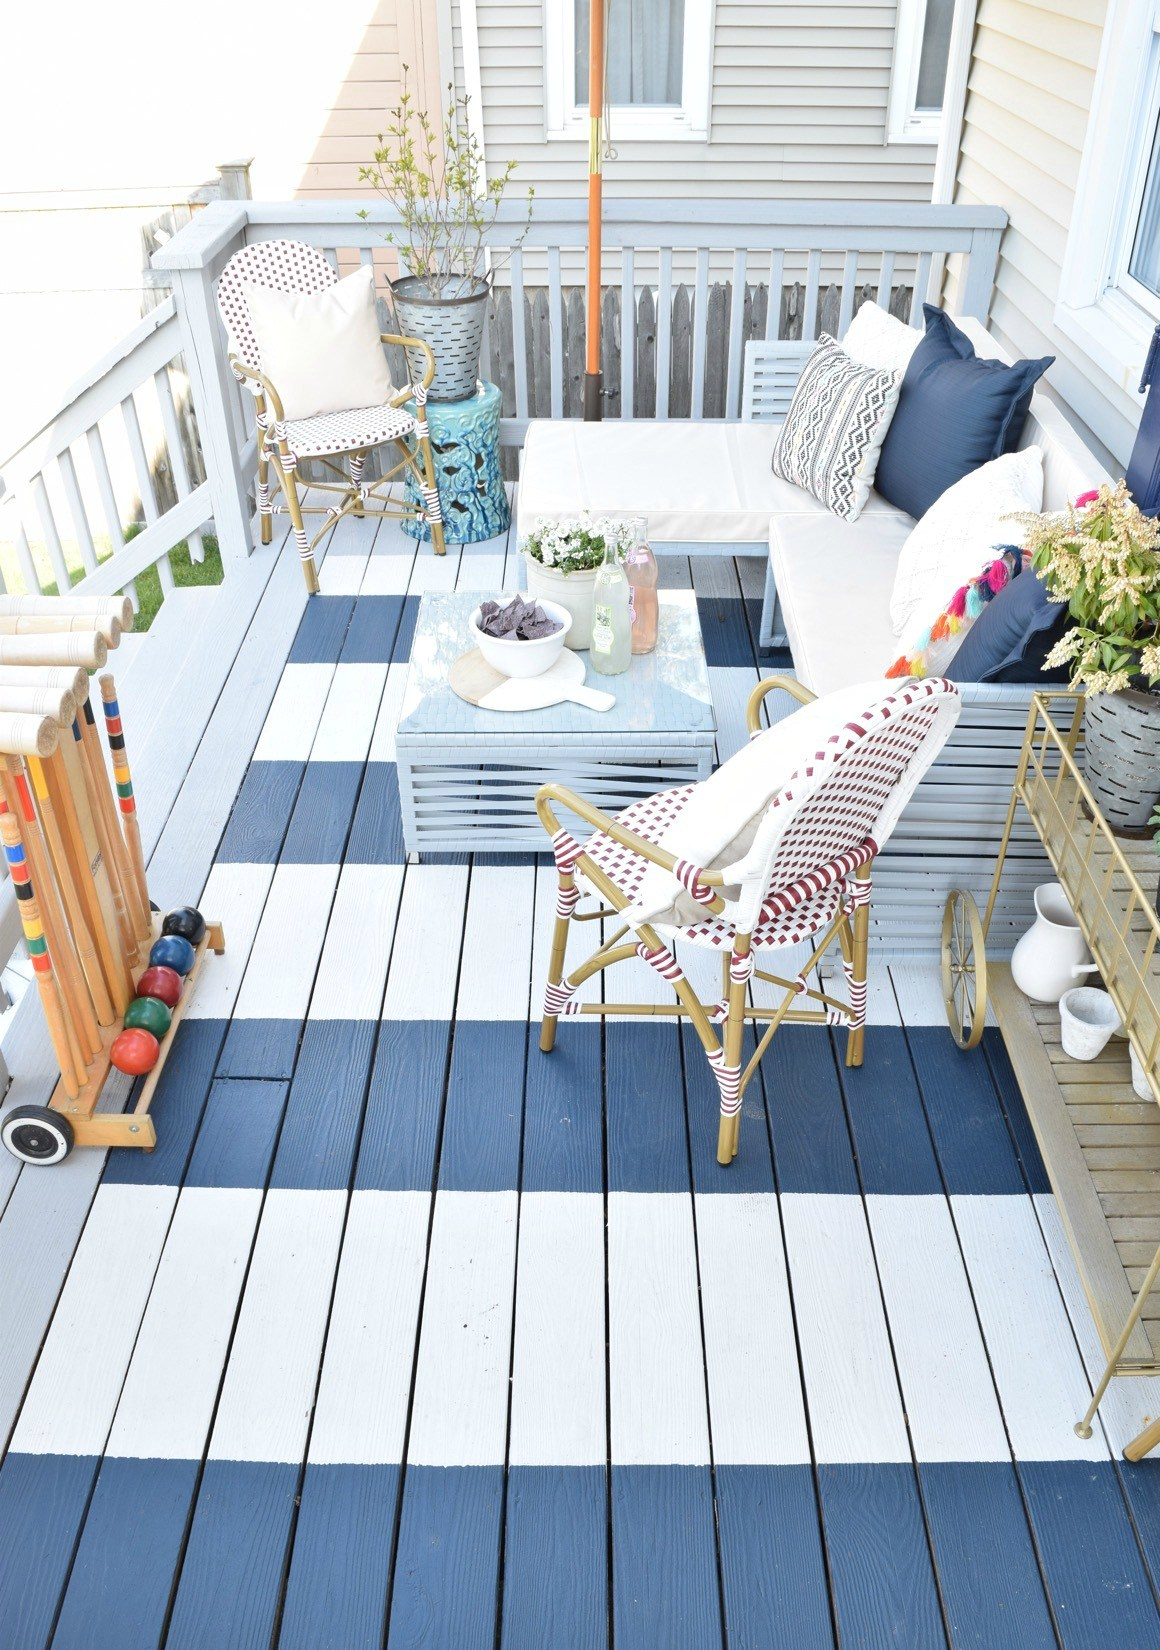 Modern Coastal Chic Patio Decor